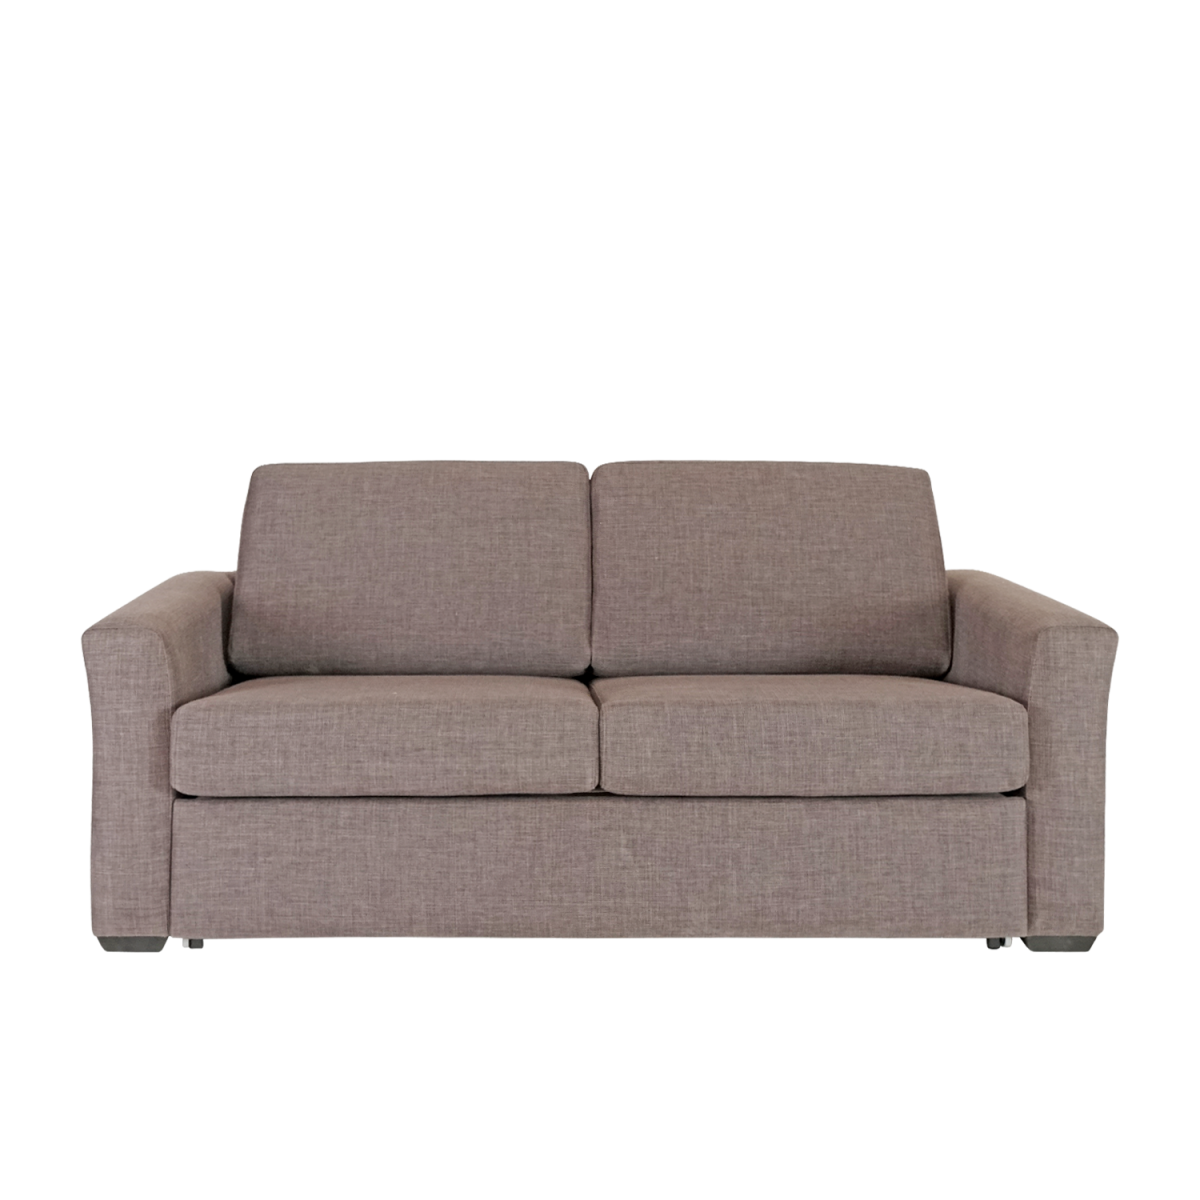 Double Star Furniture Tammy Fabric Sofa Bed Kangaroo